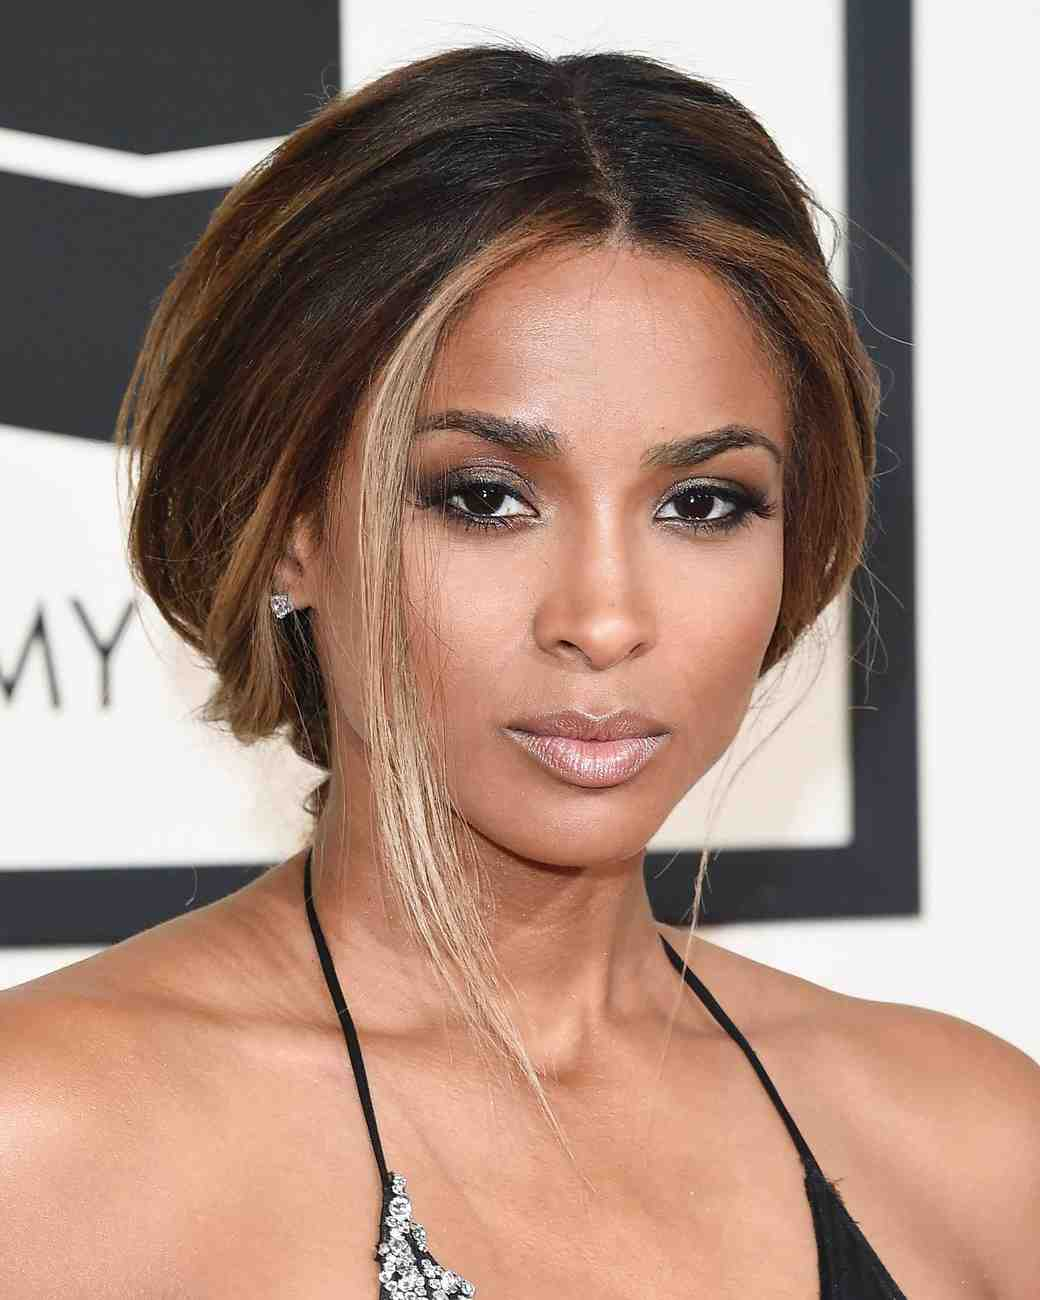 grammy-awards-2016-makeup-ciara-0216.jpg